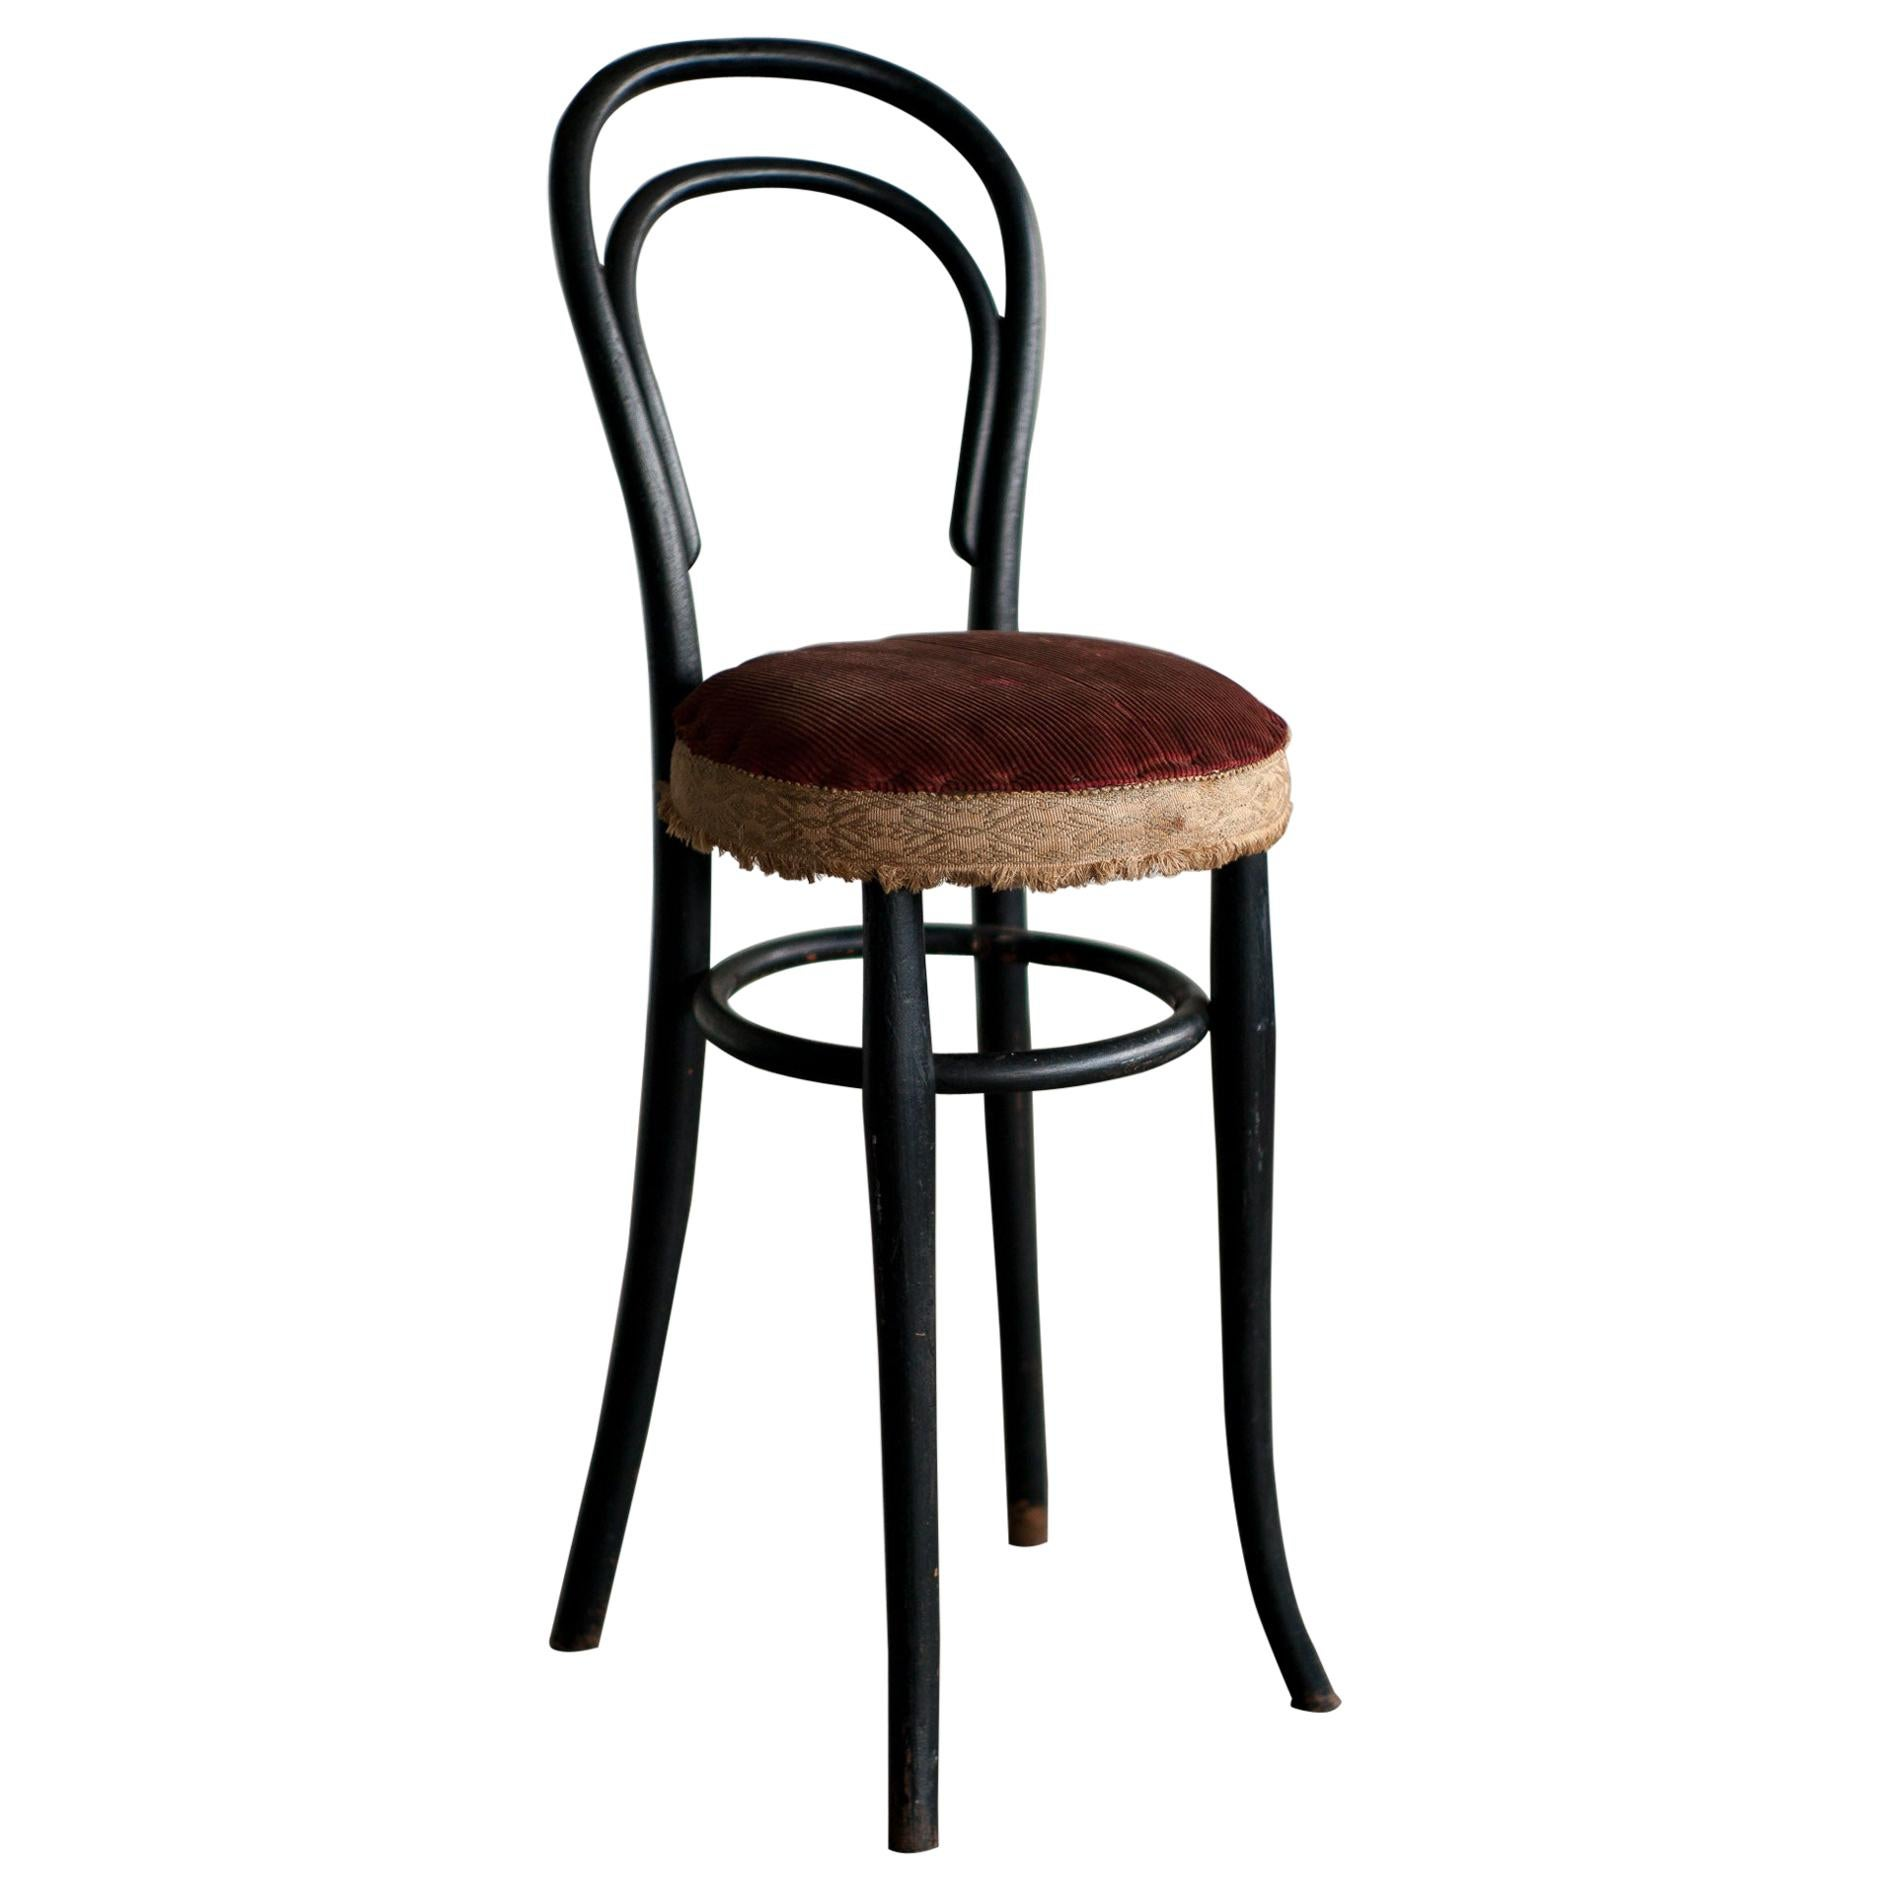 Early 20th Century Thonet No. 14 Children's Chair